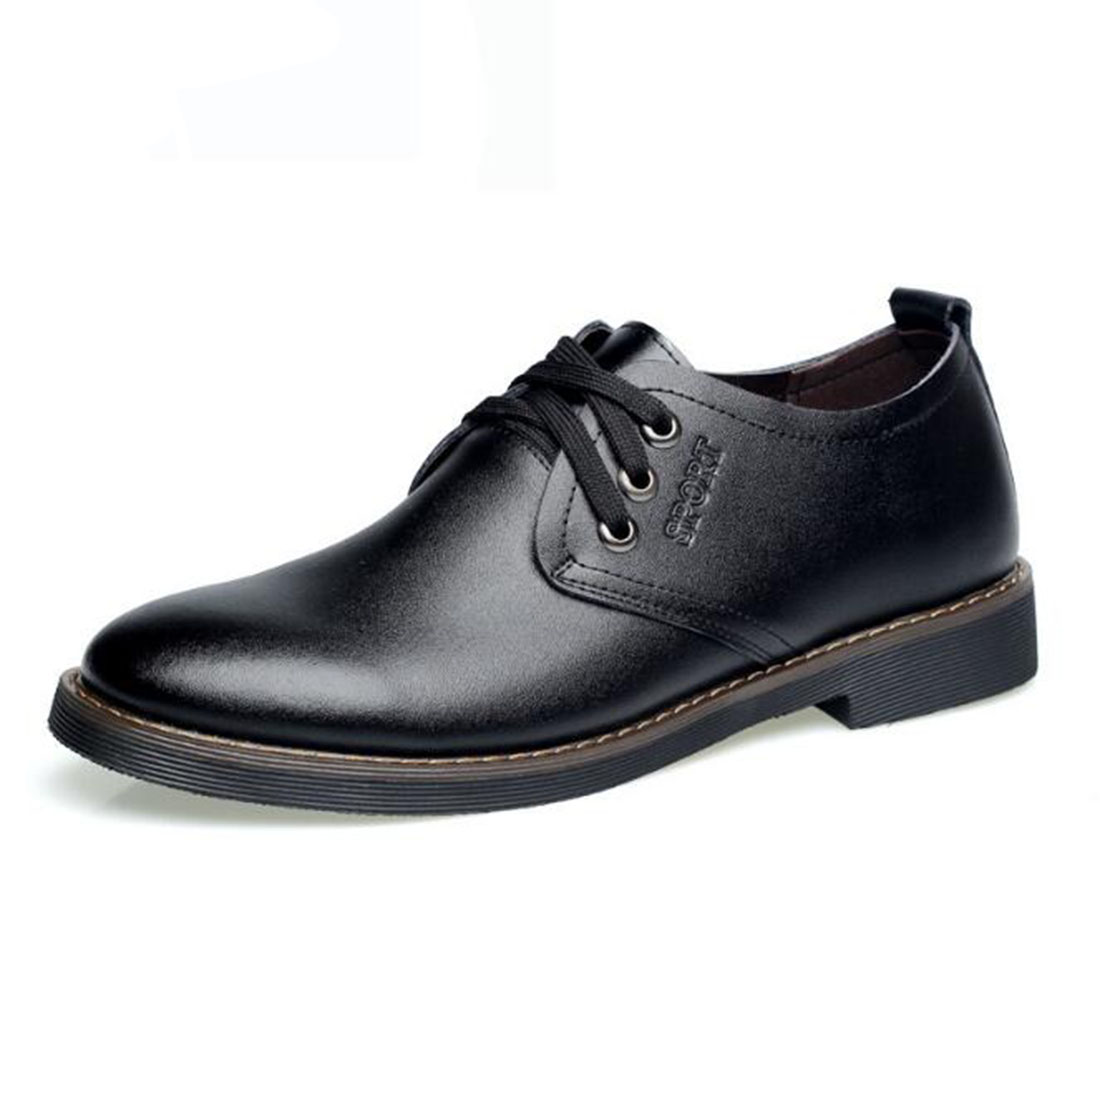 ФОТО Genuine Leather Shoes Mens , High Quality Oxford Shoes For Men, Lace-Up Business Men Shoes, Brand Men Wedding Shoes Casual Flats